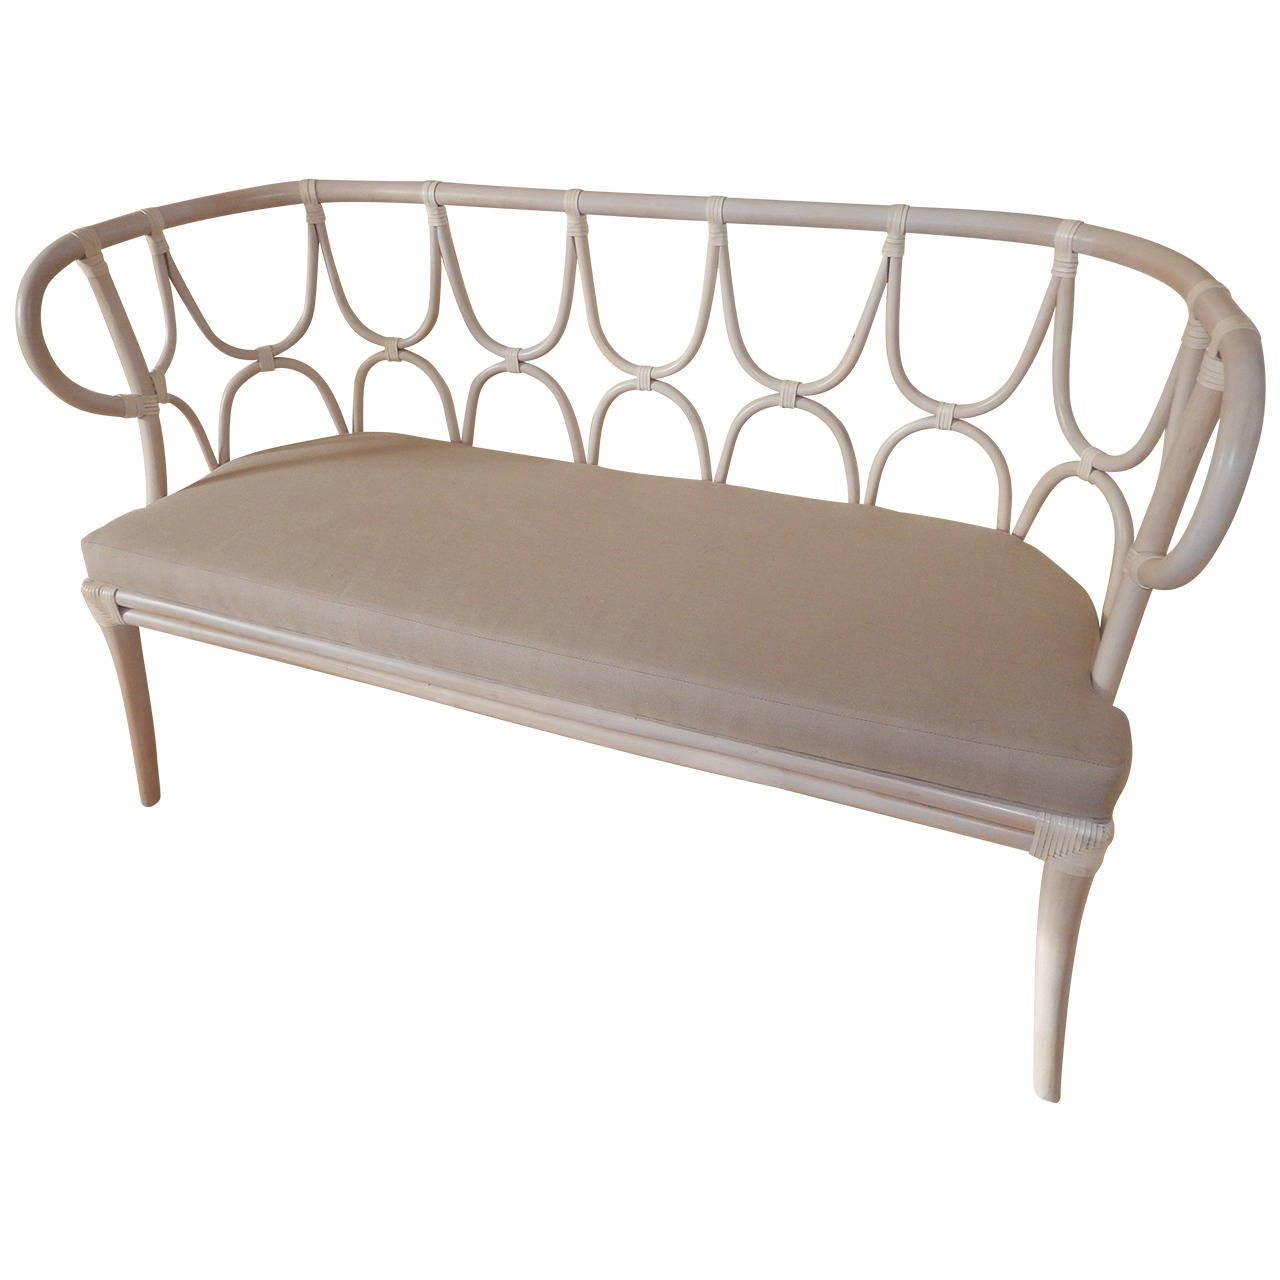 A Thonet Style Bentwood Settee For Sale